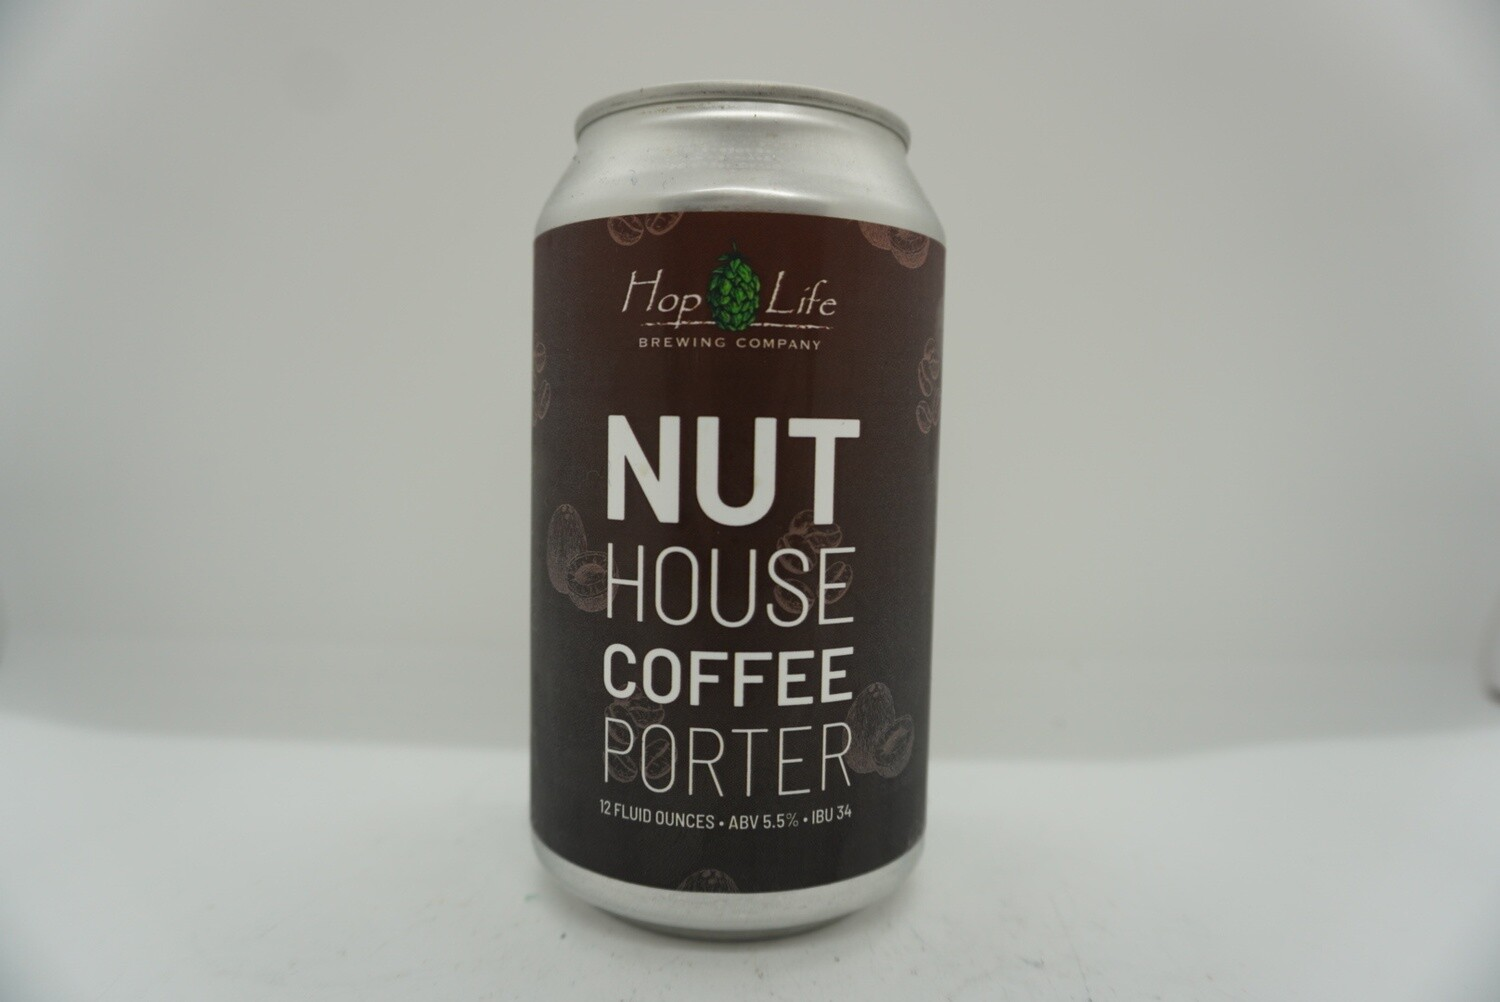 Hop Life - Nut House Coffee Porter - Porter - 5.5% ABV - 12oz Can